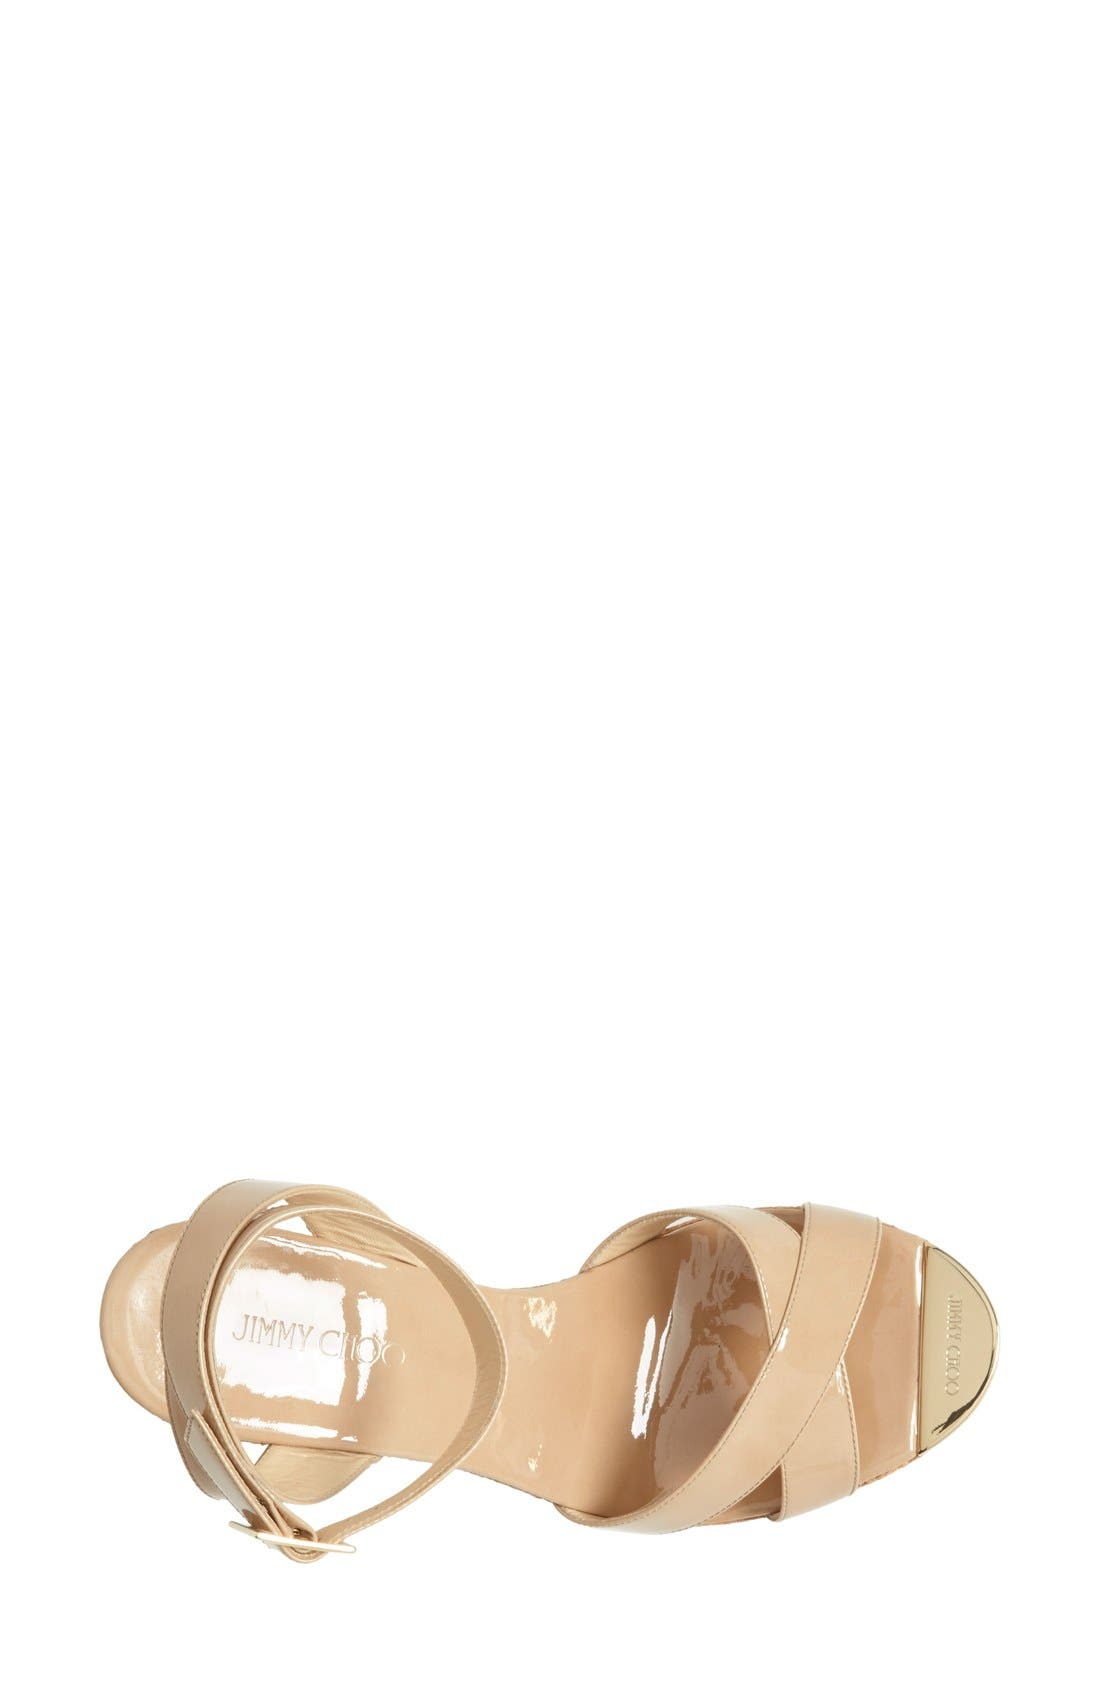 JIMMY CHOO,                             'Papyrus' Cork Wedge Sandal,                             Alternate thumbnail 3, color,                             250